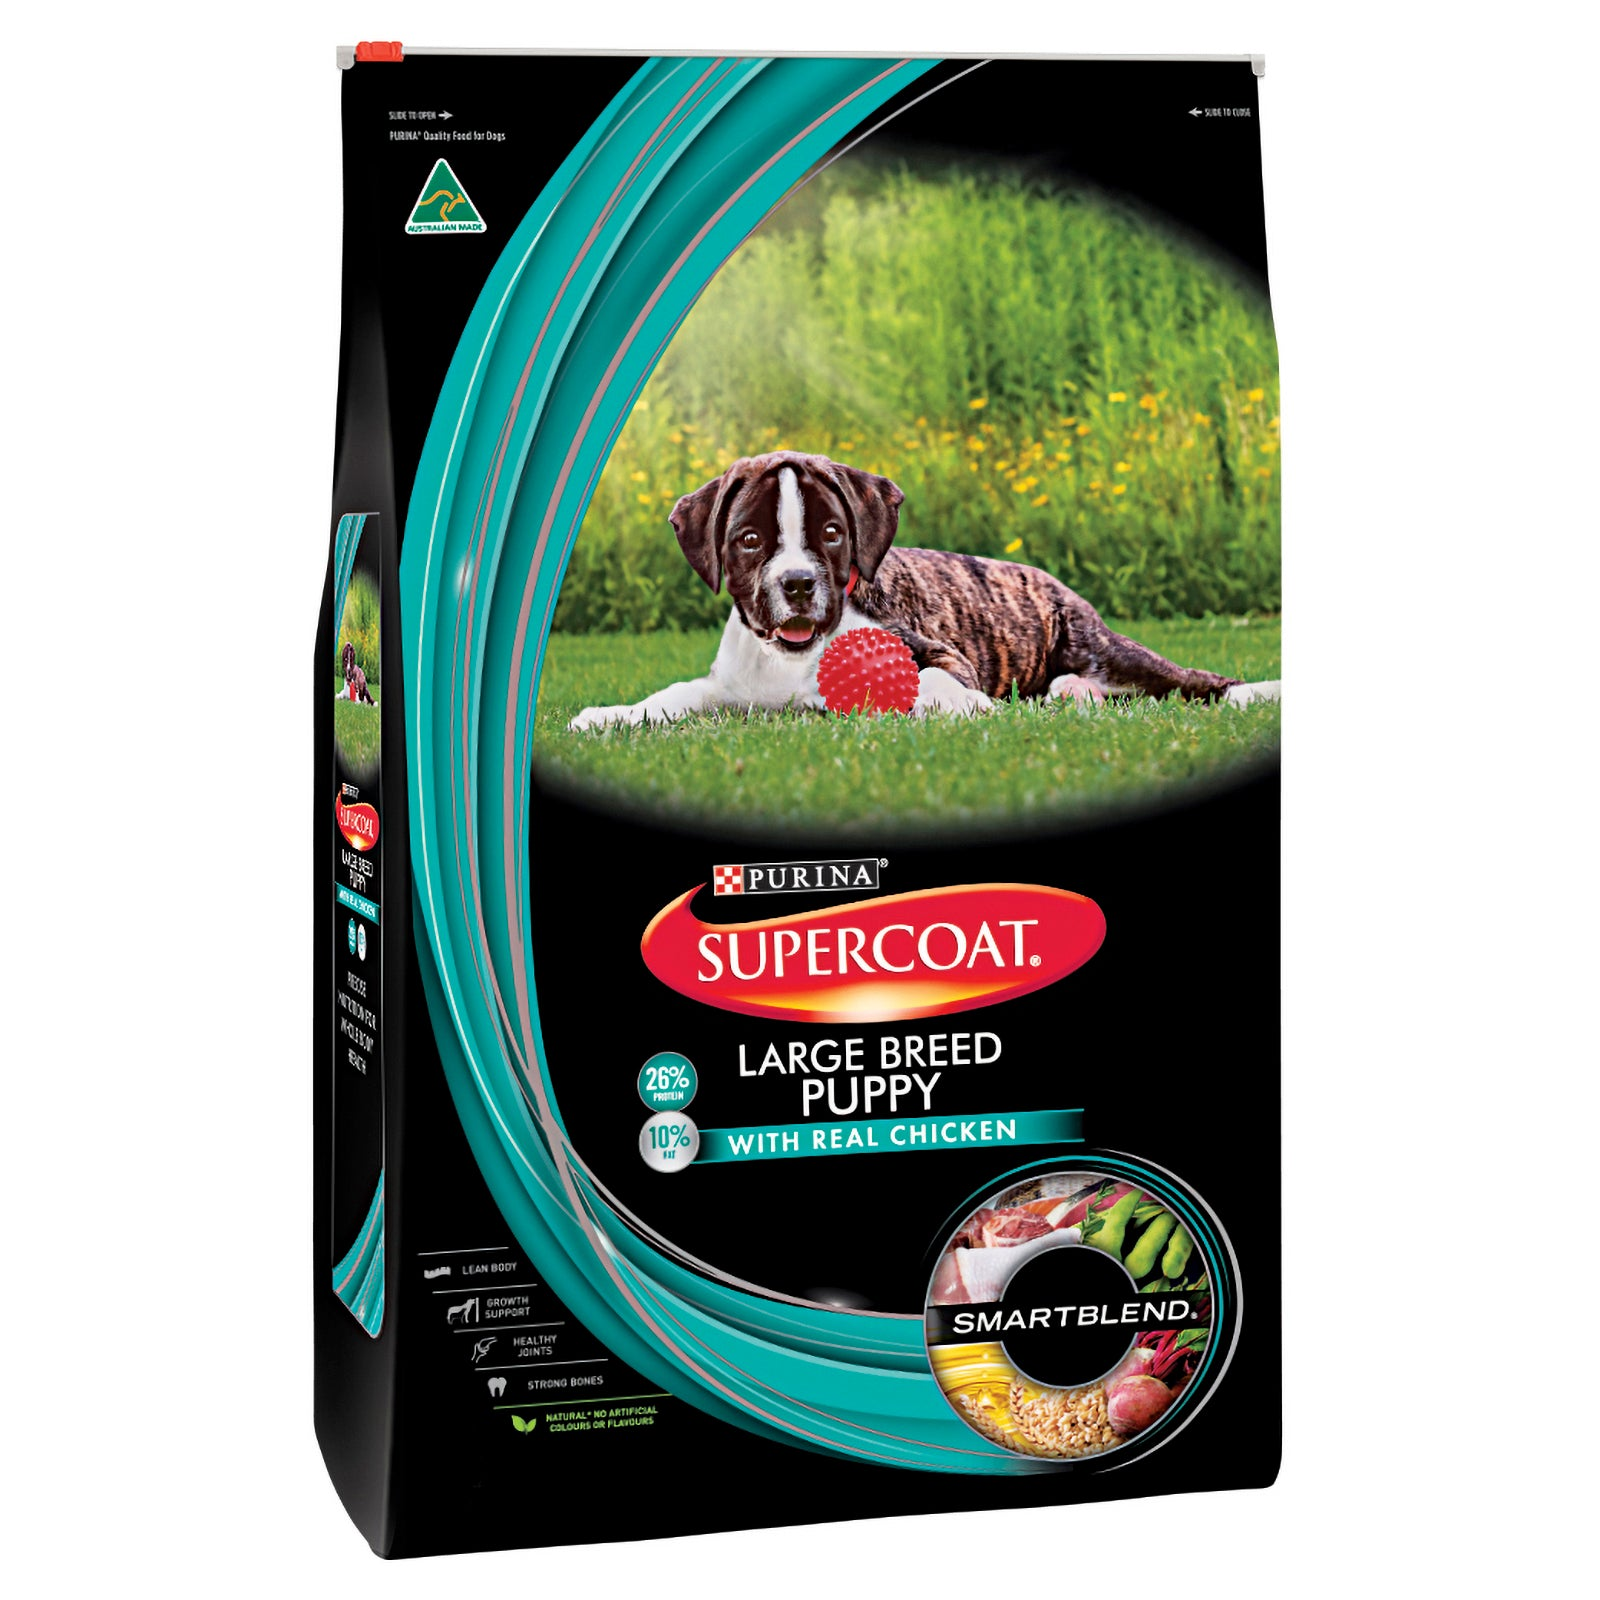 Supercoat Dog Food Puppy Large Breed Chicken